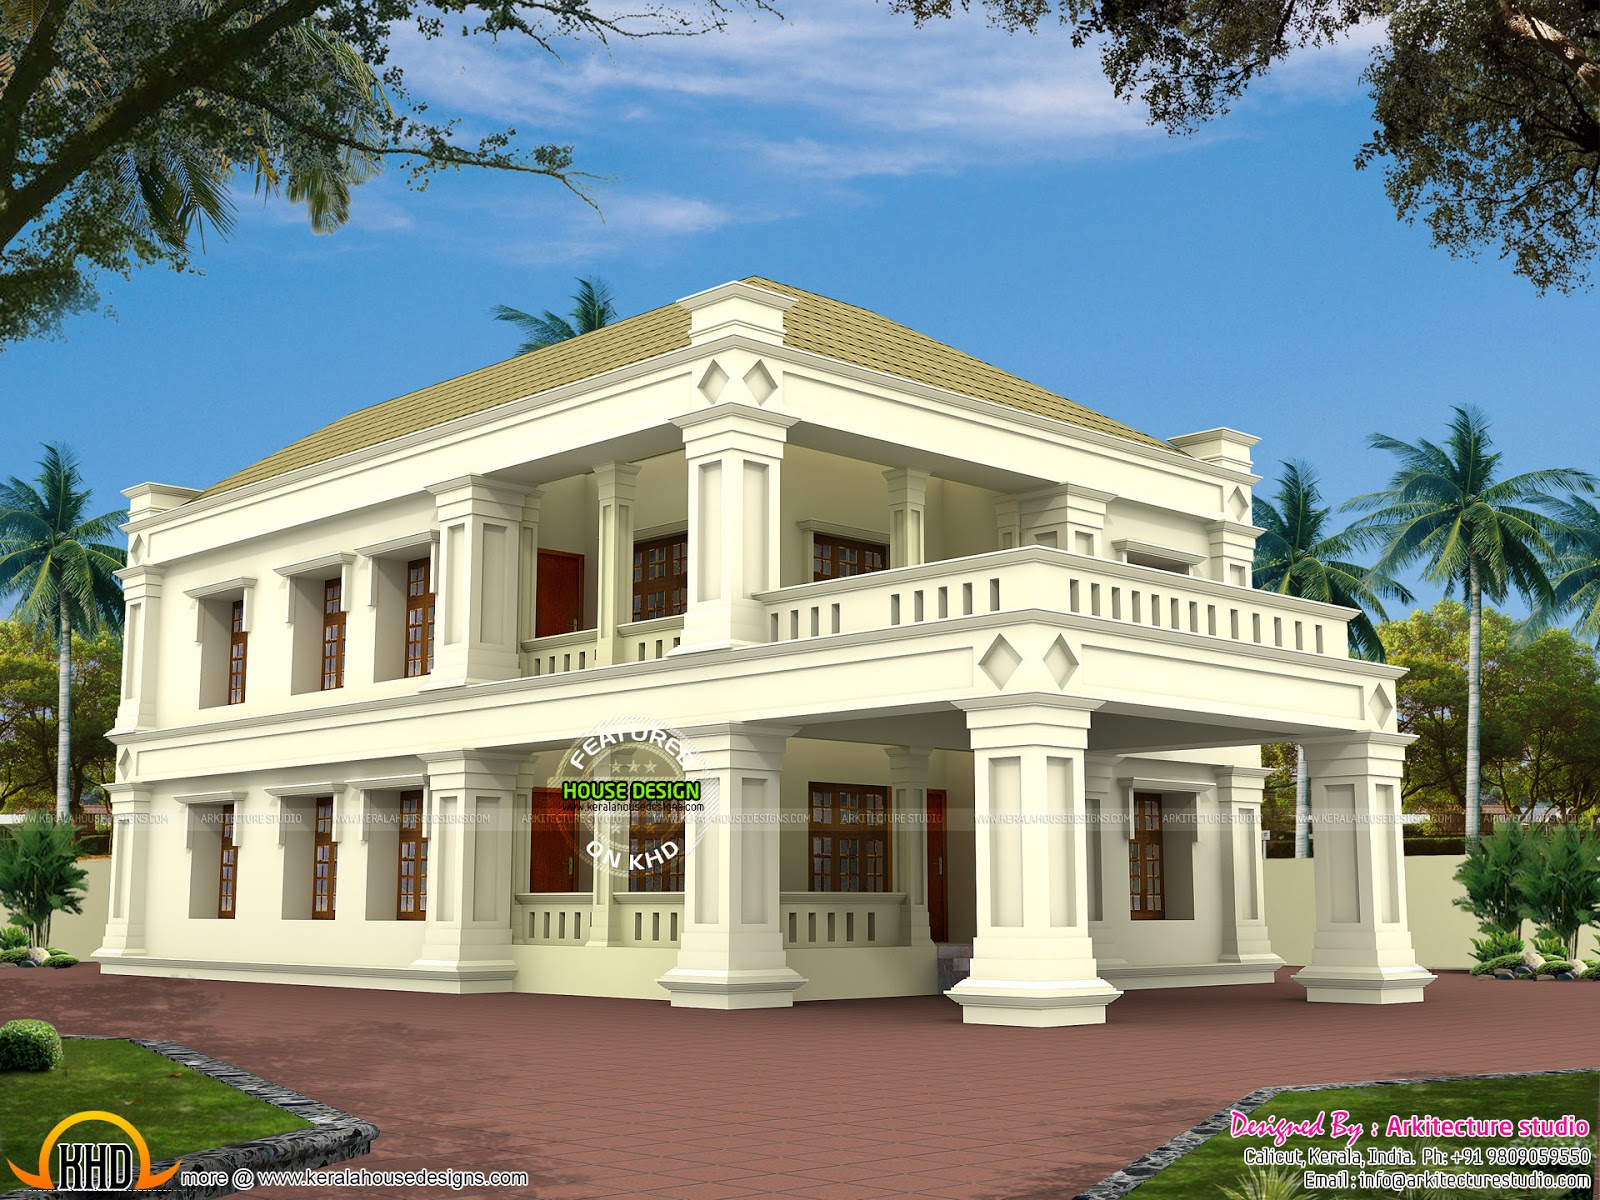 Square pillar type colonial mix home kerala home design for Square house design